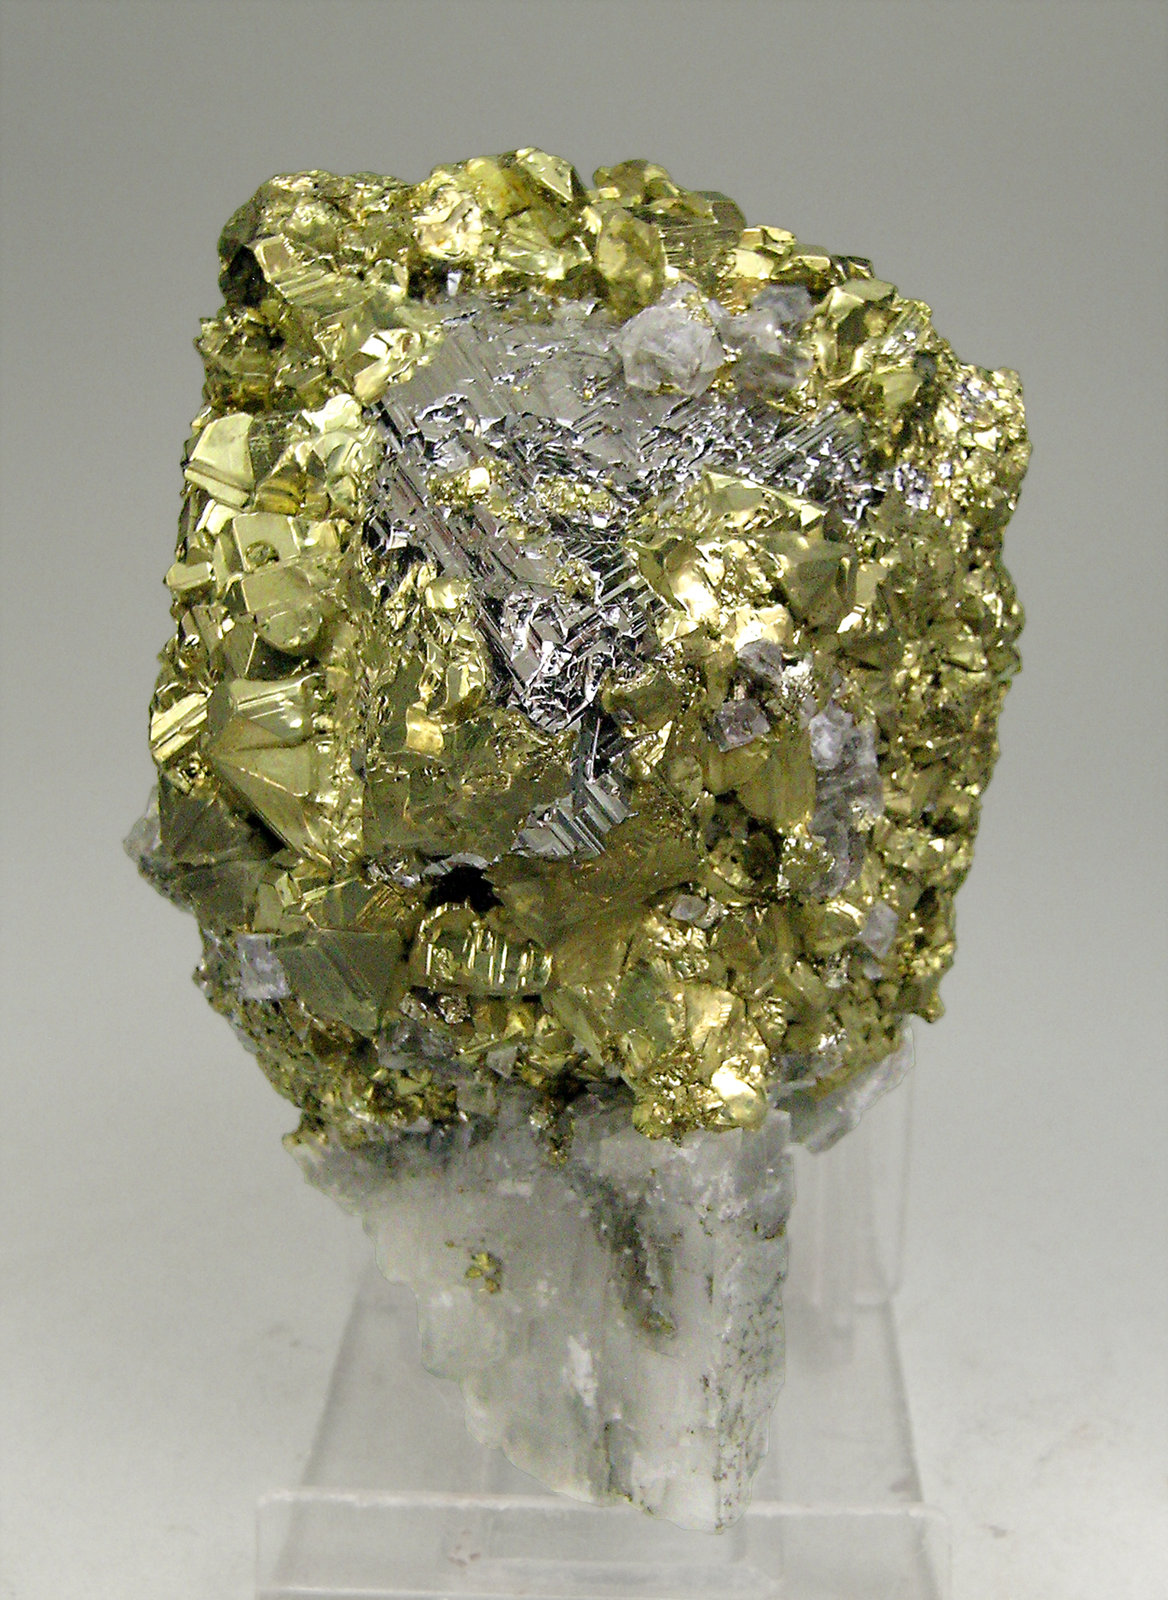 specimens/s_imagesN4/Carrollite-AT46N4f.jpg